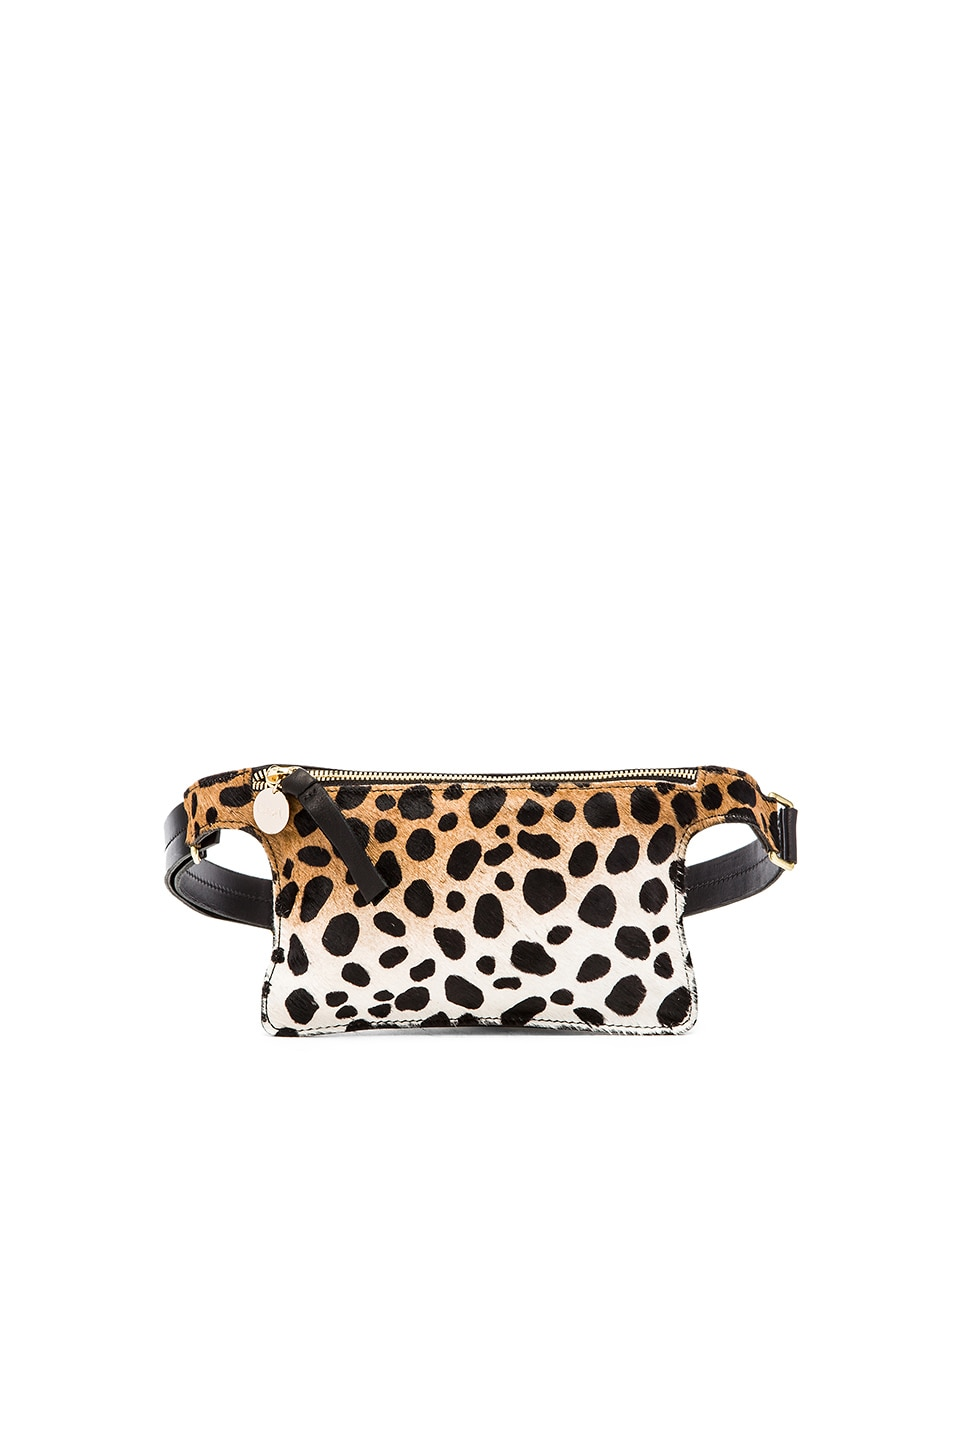 Clare V. Petit Fanny Pack in Leopard & Black